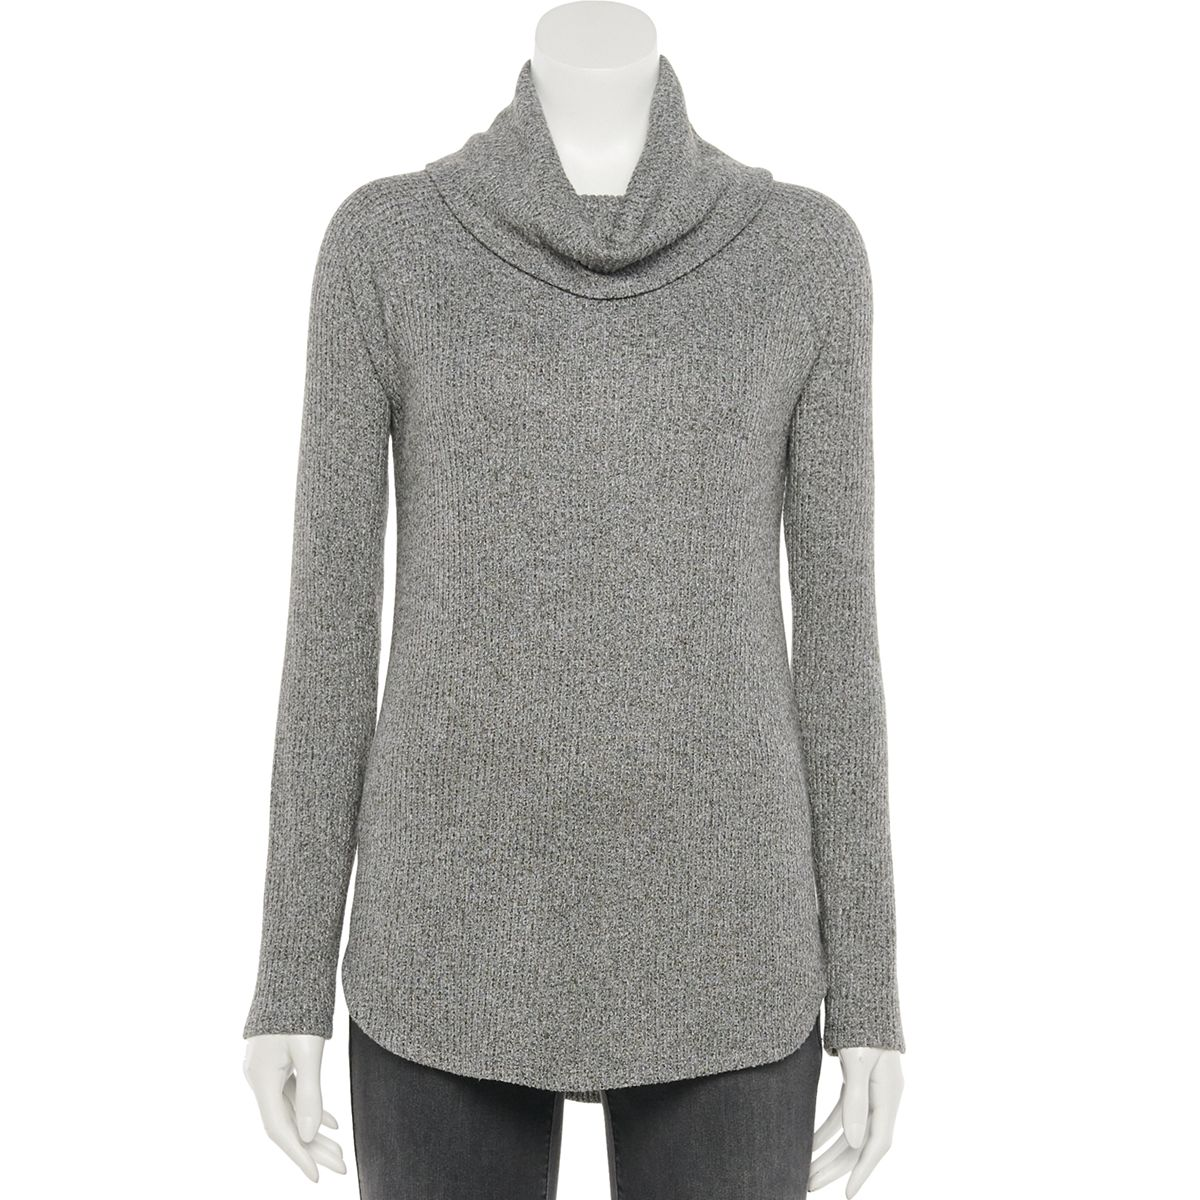 Kohl's: Up to 90% Off Women's Sweaters as low as $2.88